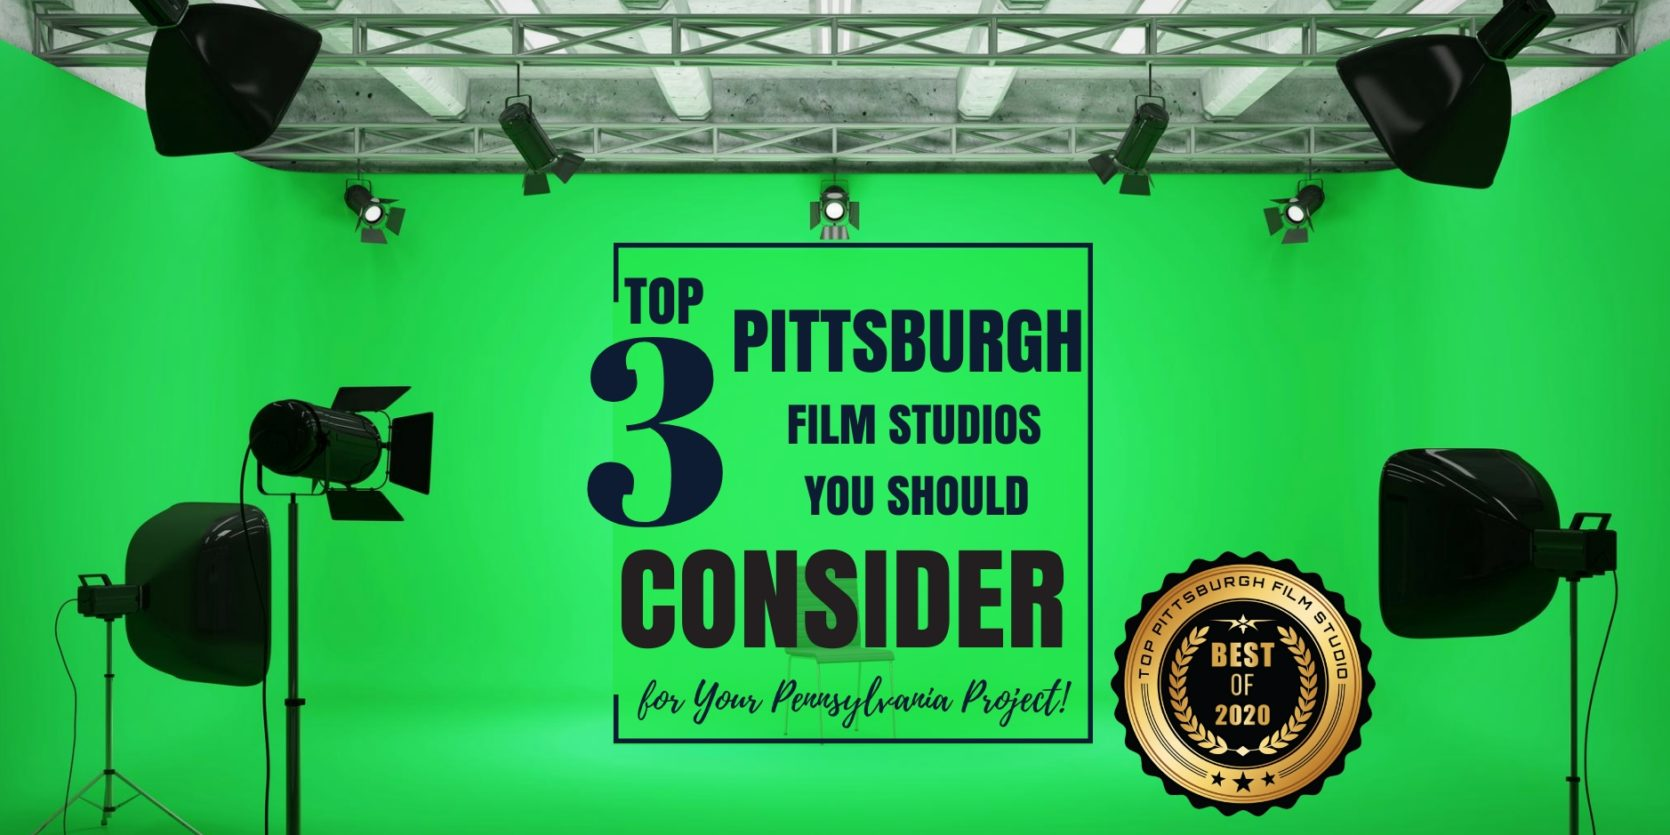 Top 3 Pittsburgh Film Studios